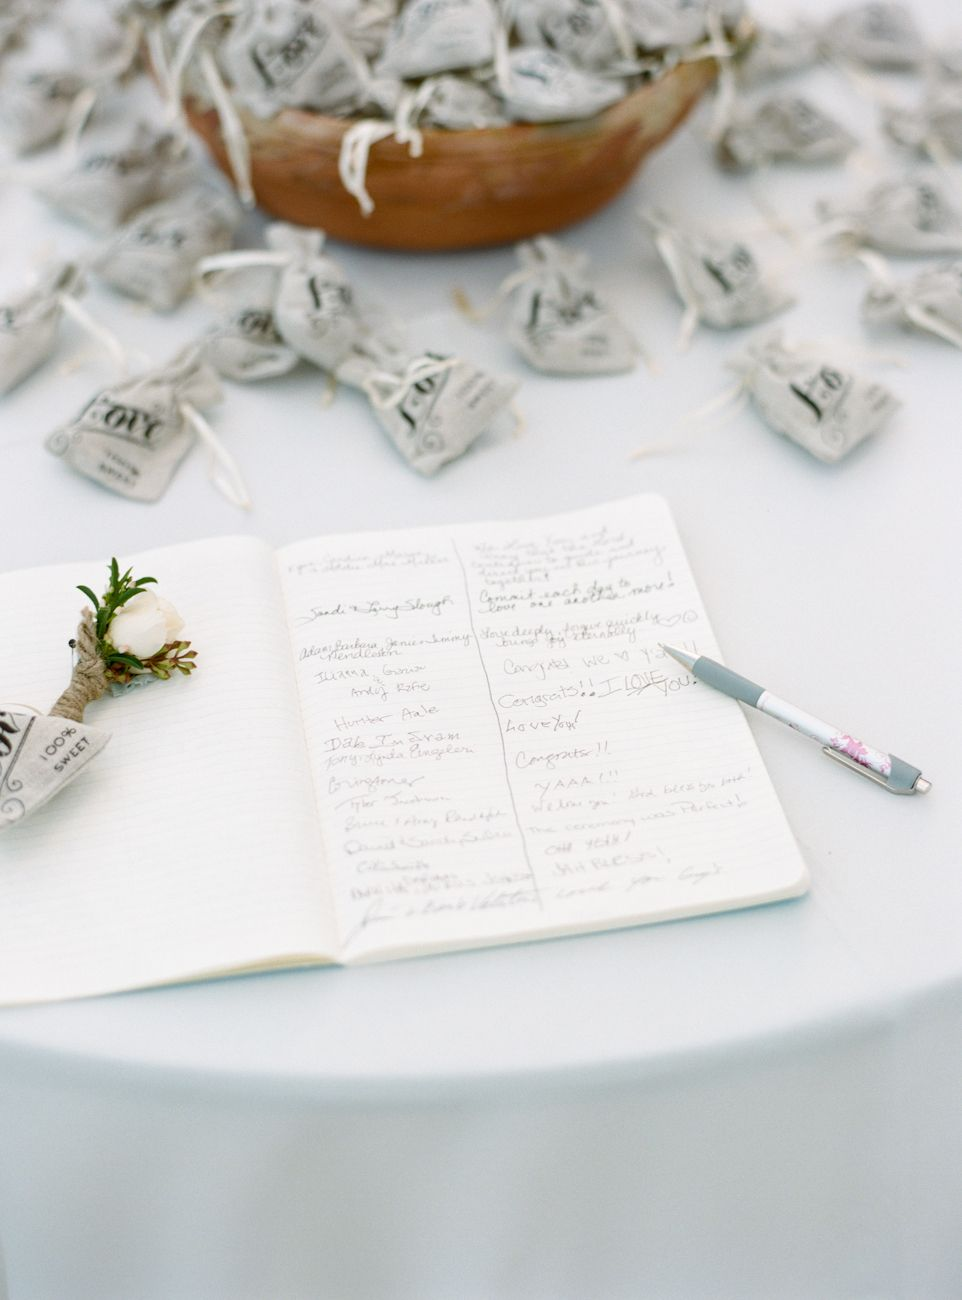 Easy, cheap wedding favors. We bought the \